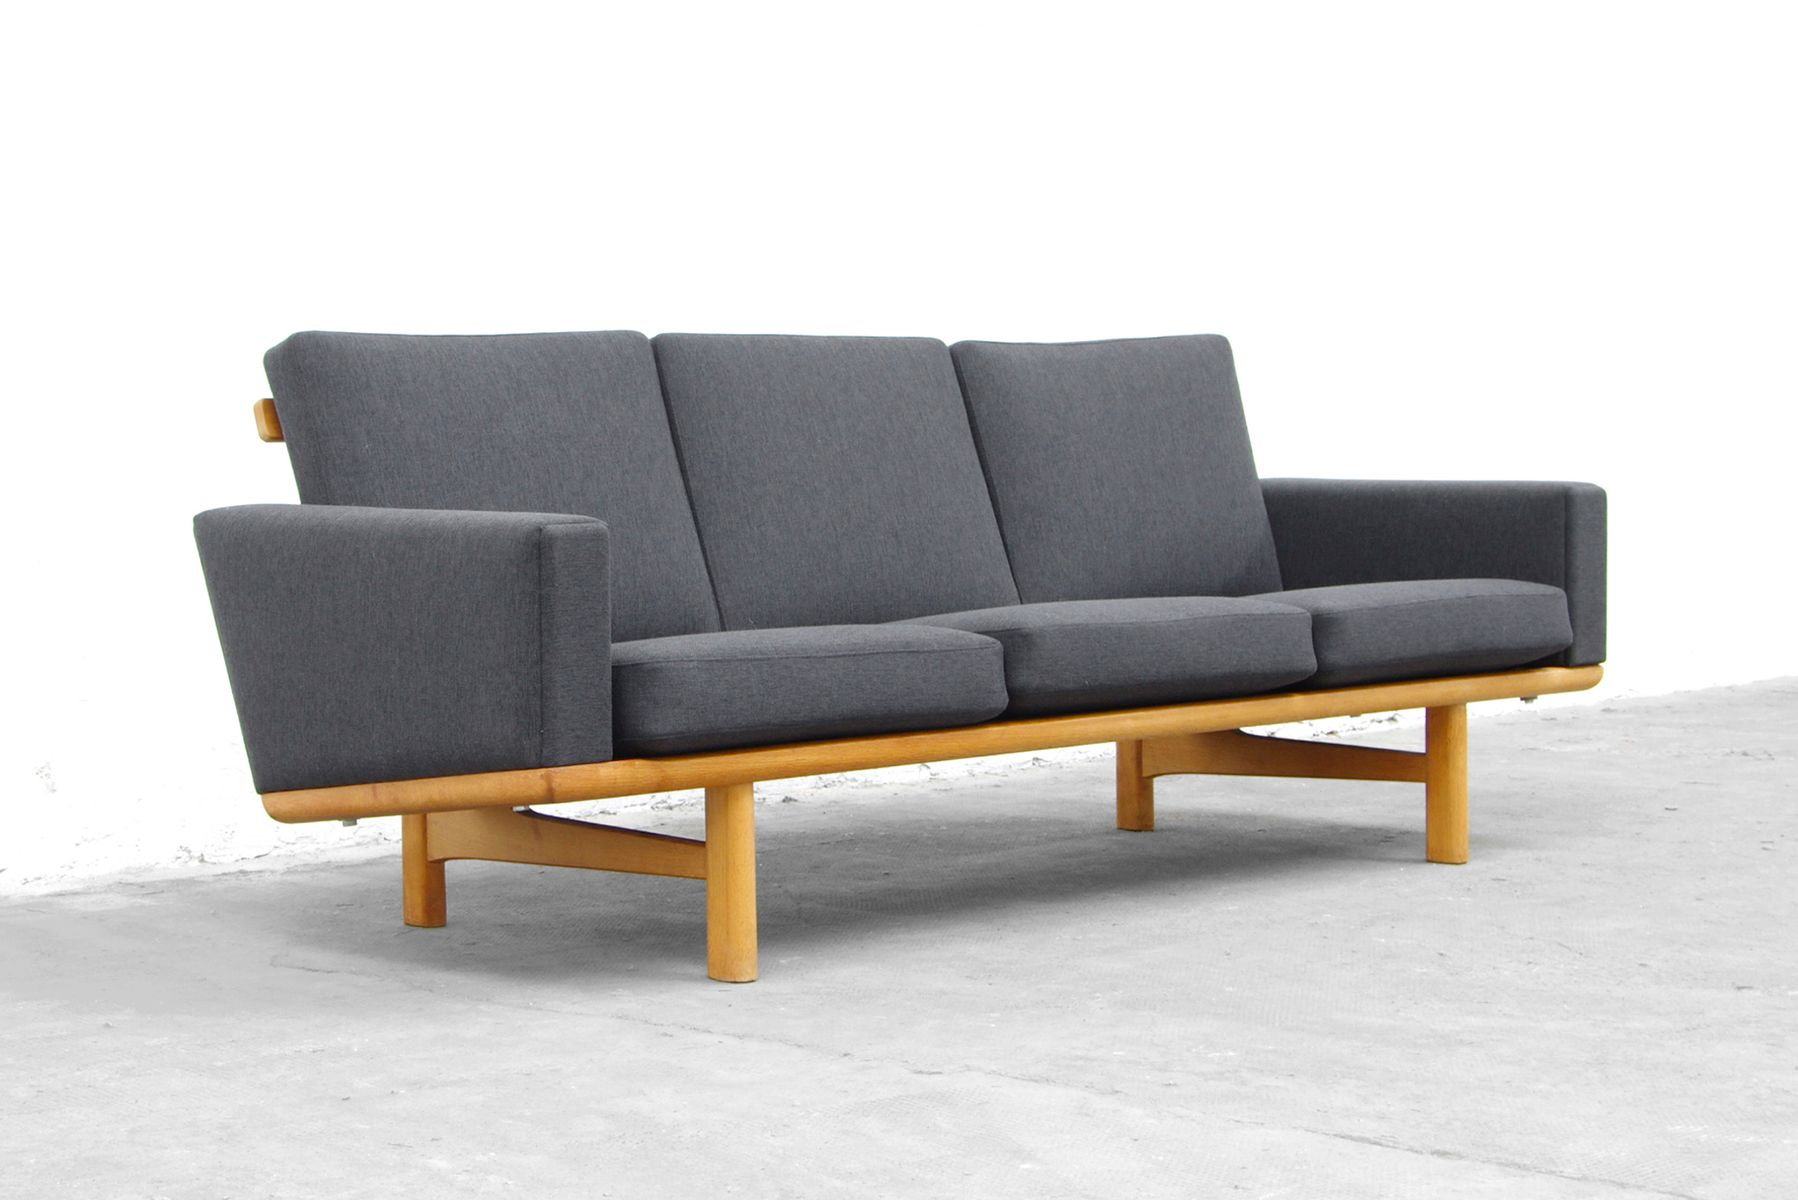 eichenholz ge 236 3 sofa von hans wegner f r getama bei. Black Bedroom Furniture Sets. Home Design Ideas